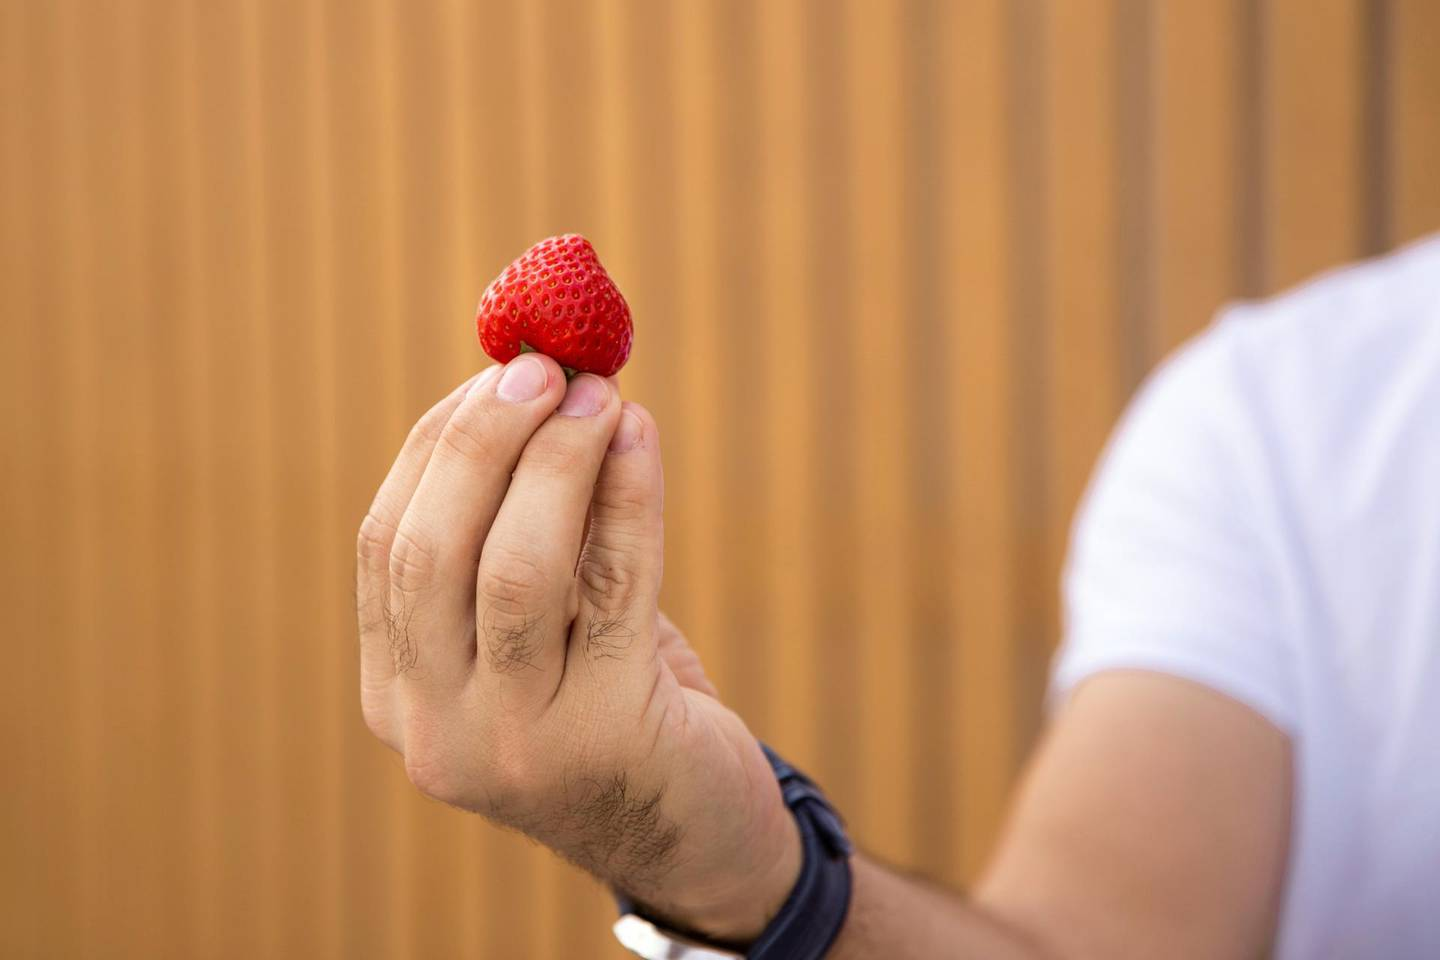 DUBAI, UNITED ARAB EMIRATES - SEPTEMBER 17, 2018.  Strawberries grown in Agricool's container in Sustainable City.Agricool is a french start-up that grows fruits and vegetables inside shipping containers, where they grow without pesticide, minimum water and nutrition intake, no GMOs, and are harvested the day you will purchase. (Photo by Reem Mohammed/The National)Reporter: LIZ COOKMANSection: NA